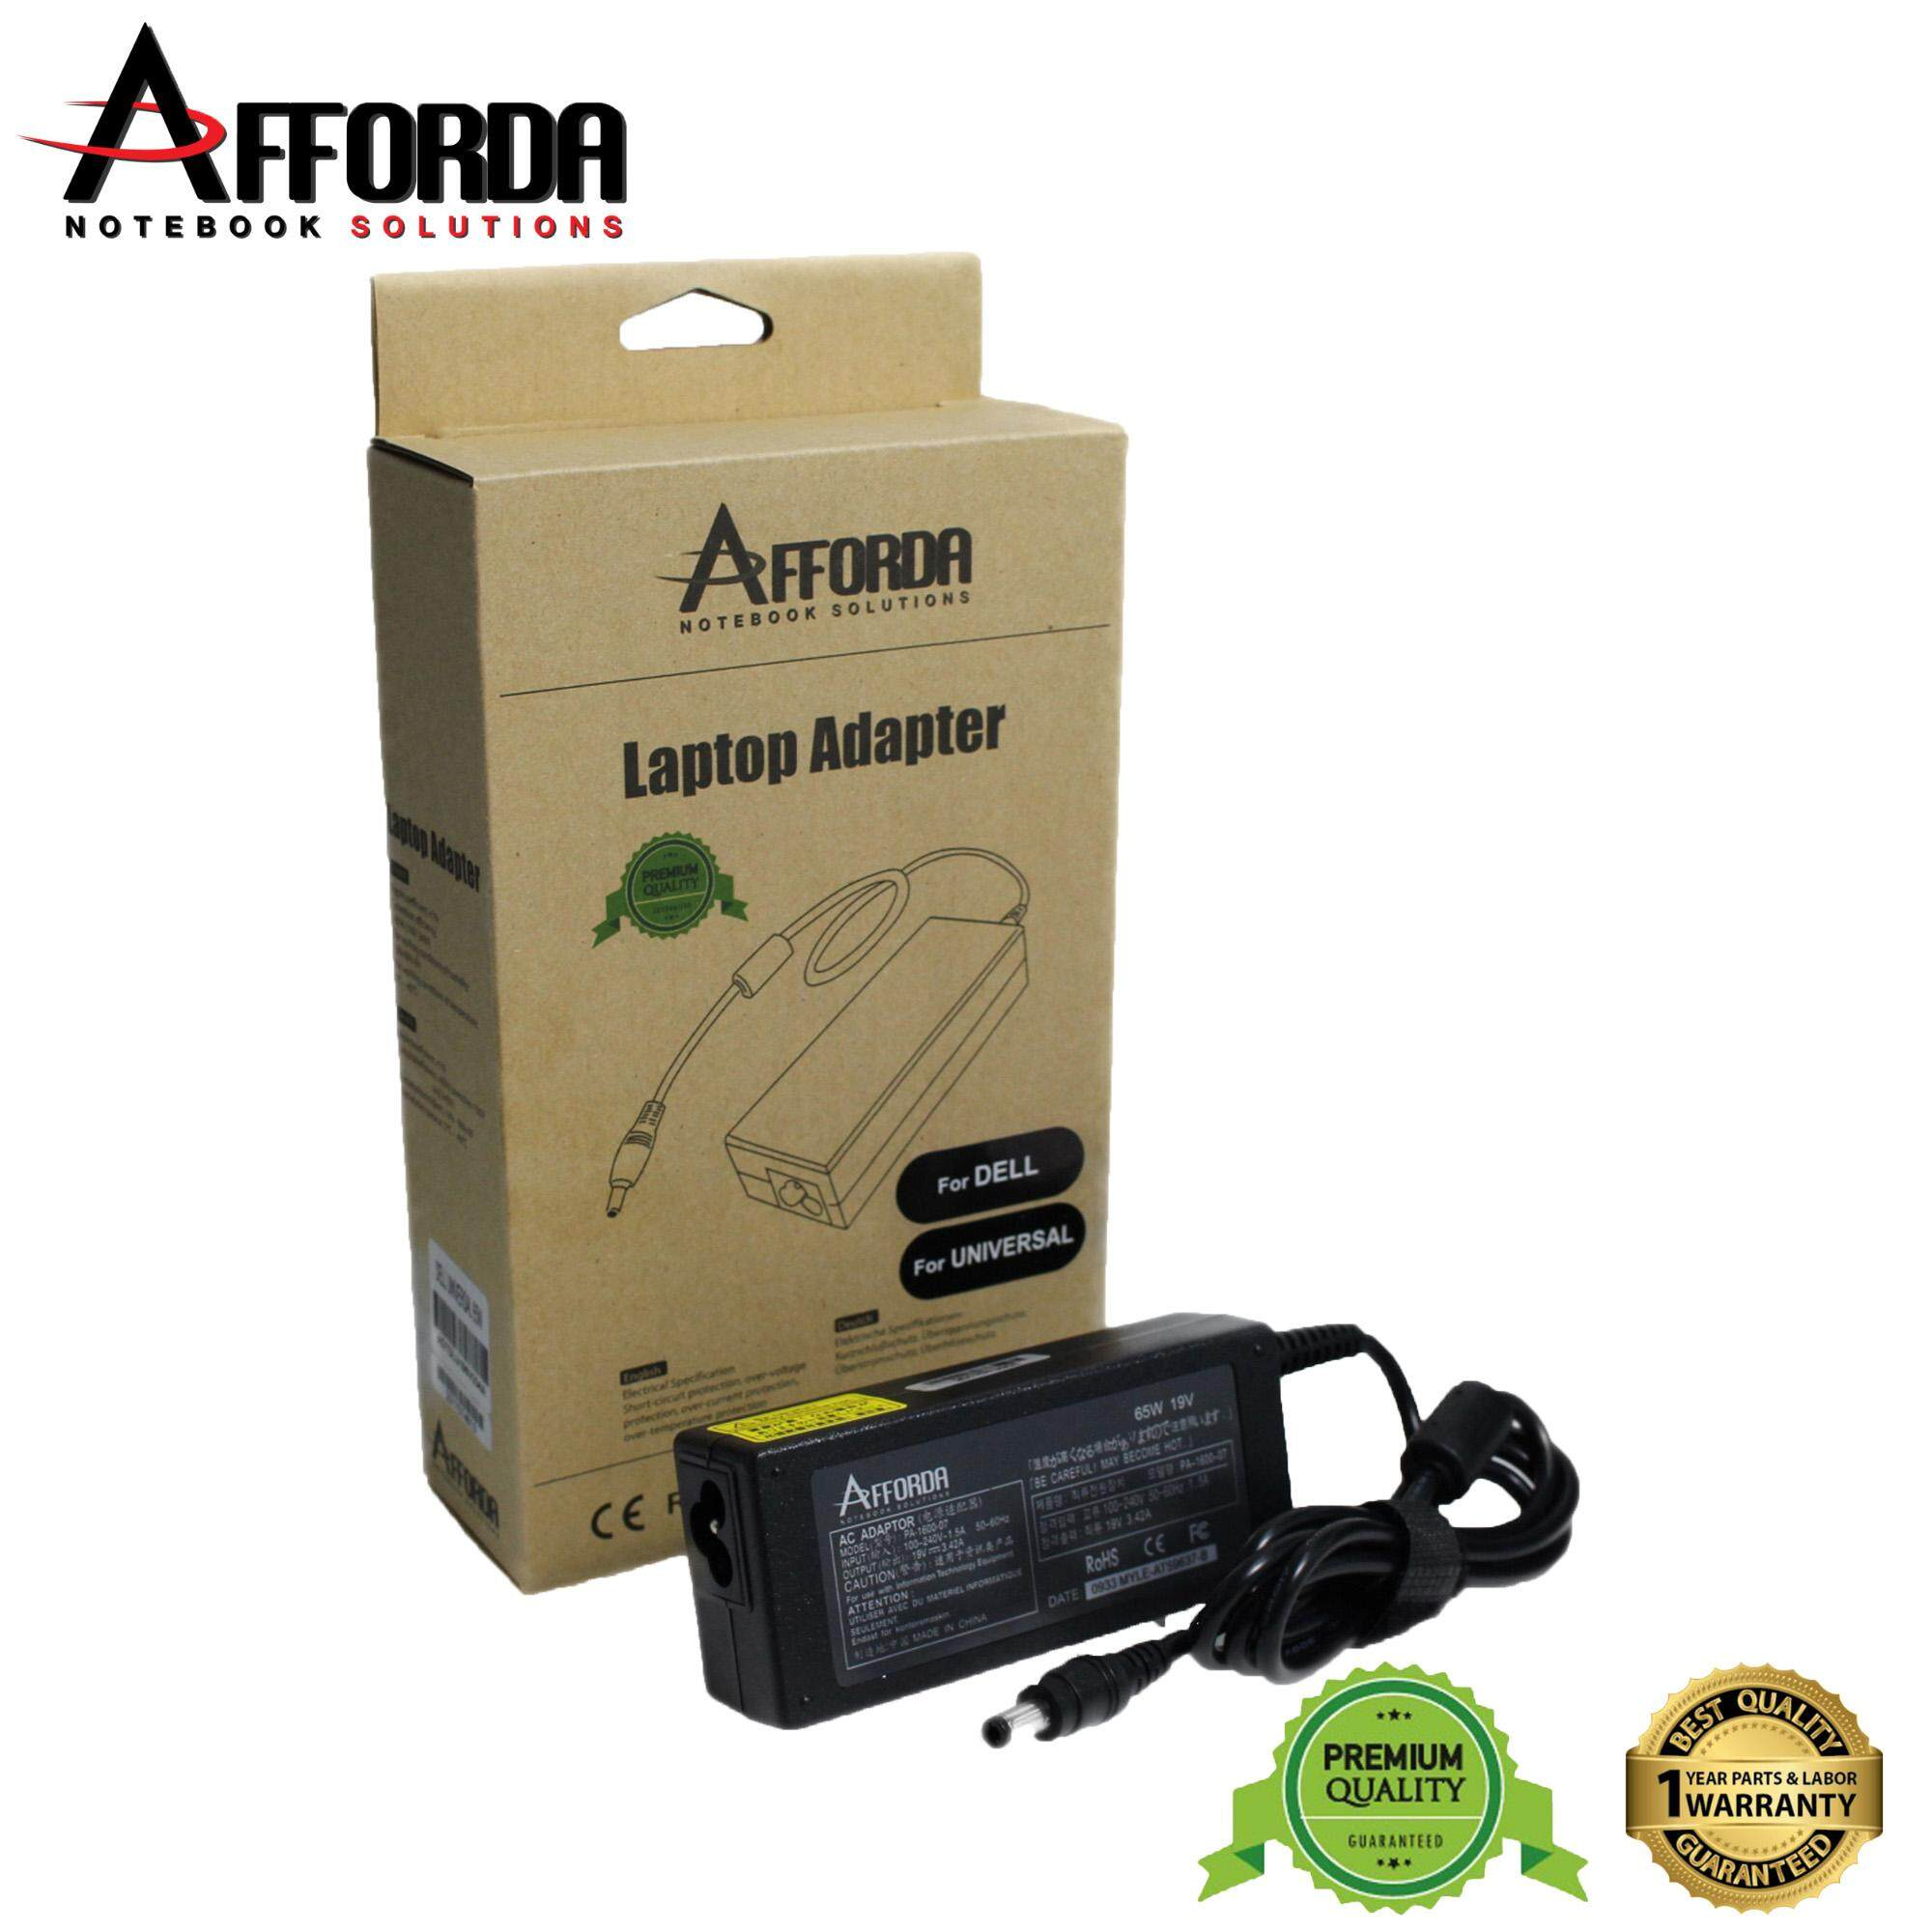 AFFORDA DELL UNIVERSAL ADAPTER 65W FOR DELL NOTEBOOK